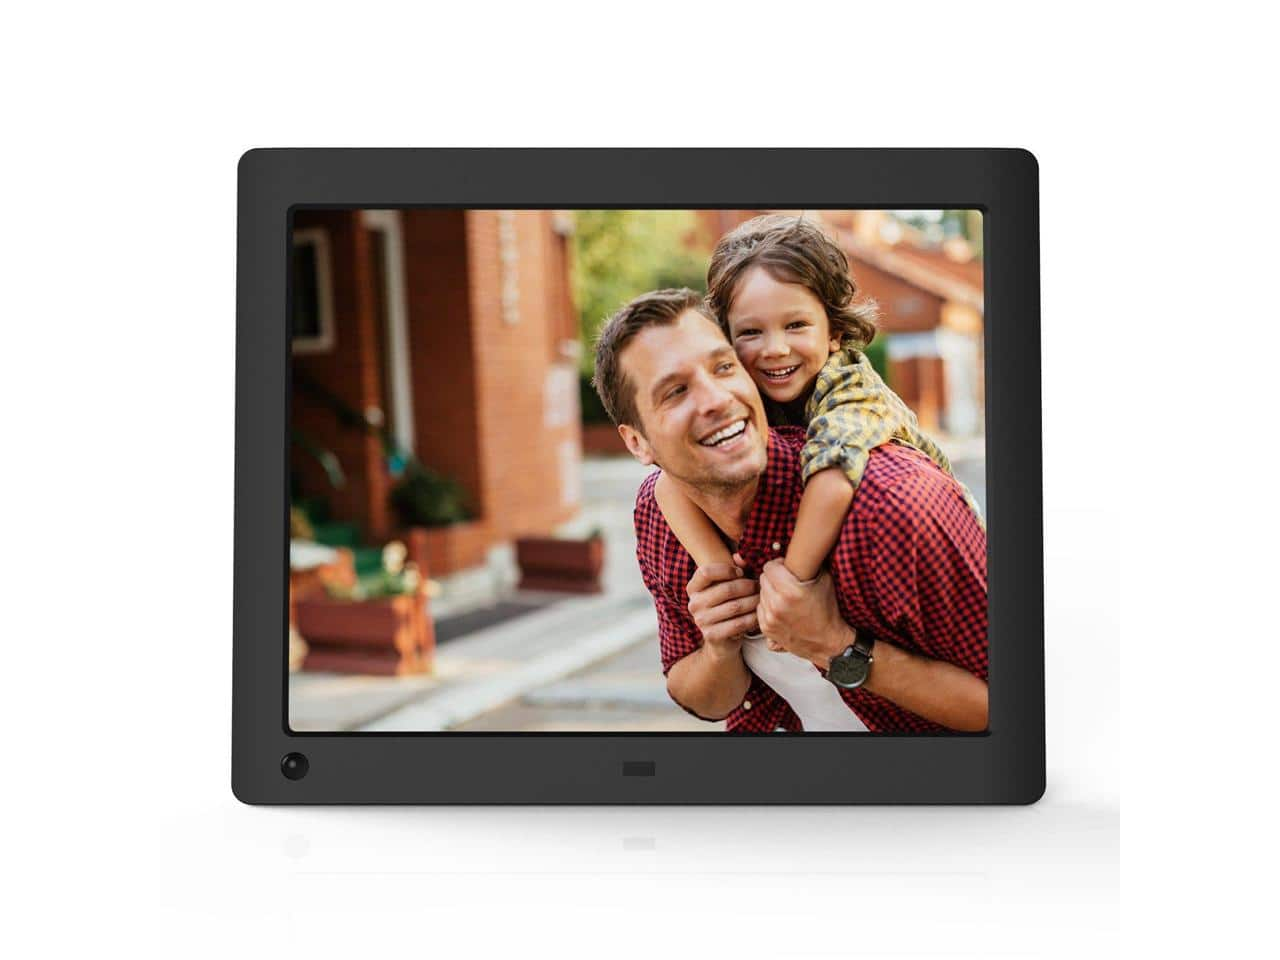 NIX Advance - 8 inch Hi-Res Digital Photo Frame with Motion Sensor - $59.99 at Newegg